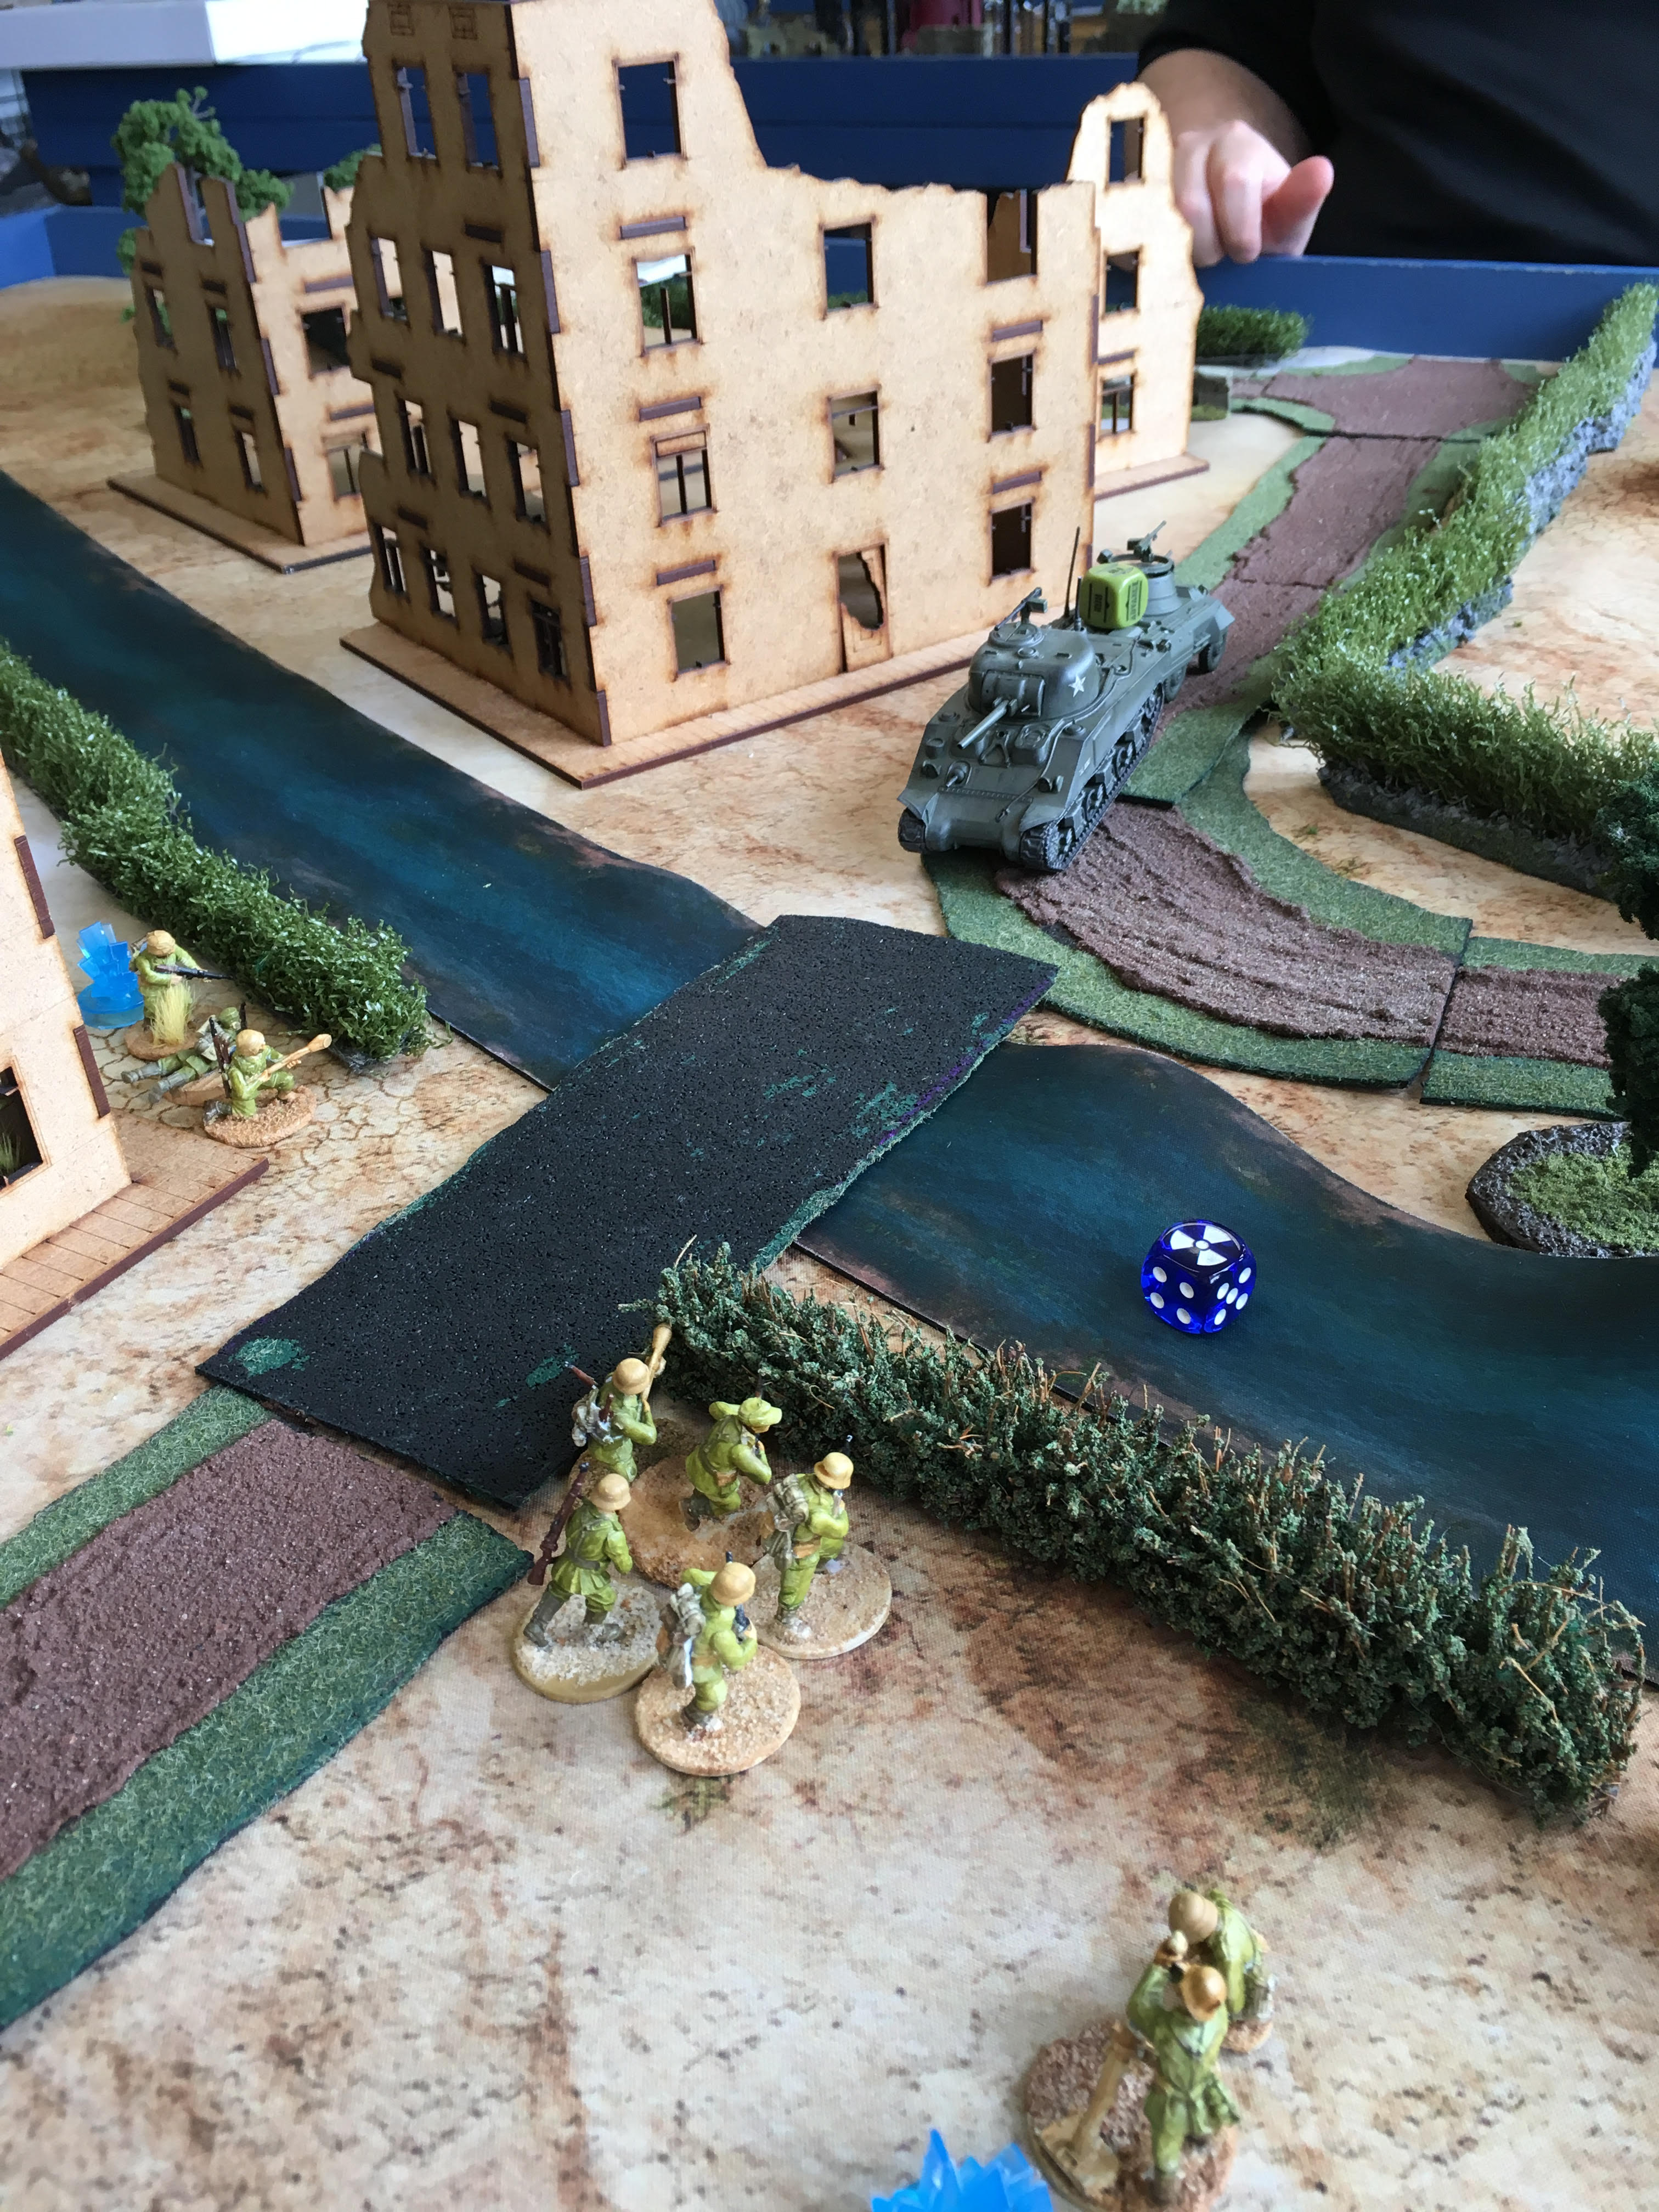 DAK versus 29th Infantry Division in a fierce infantry engagement